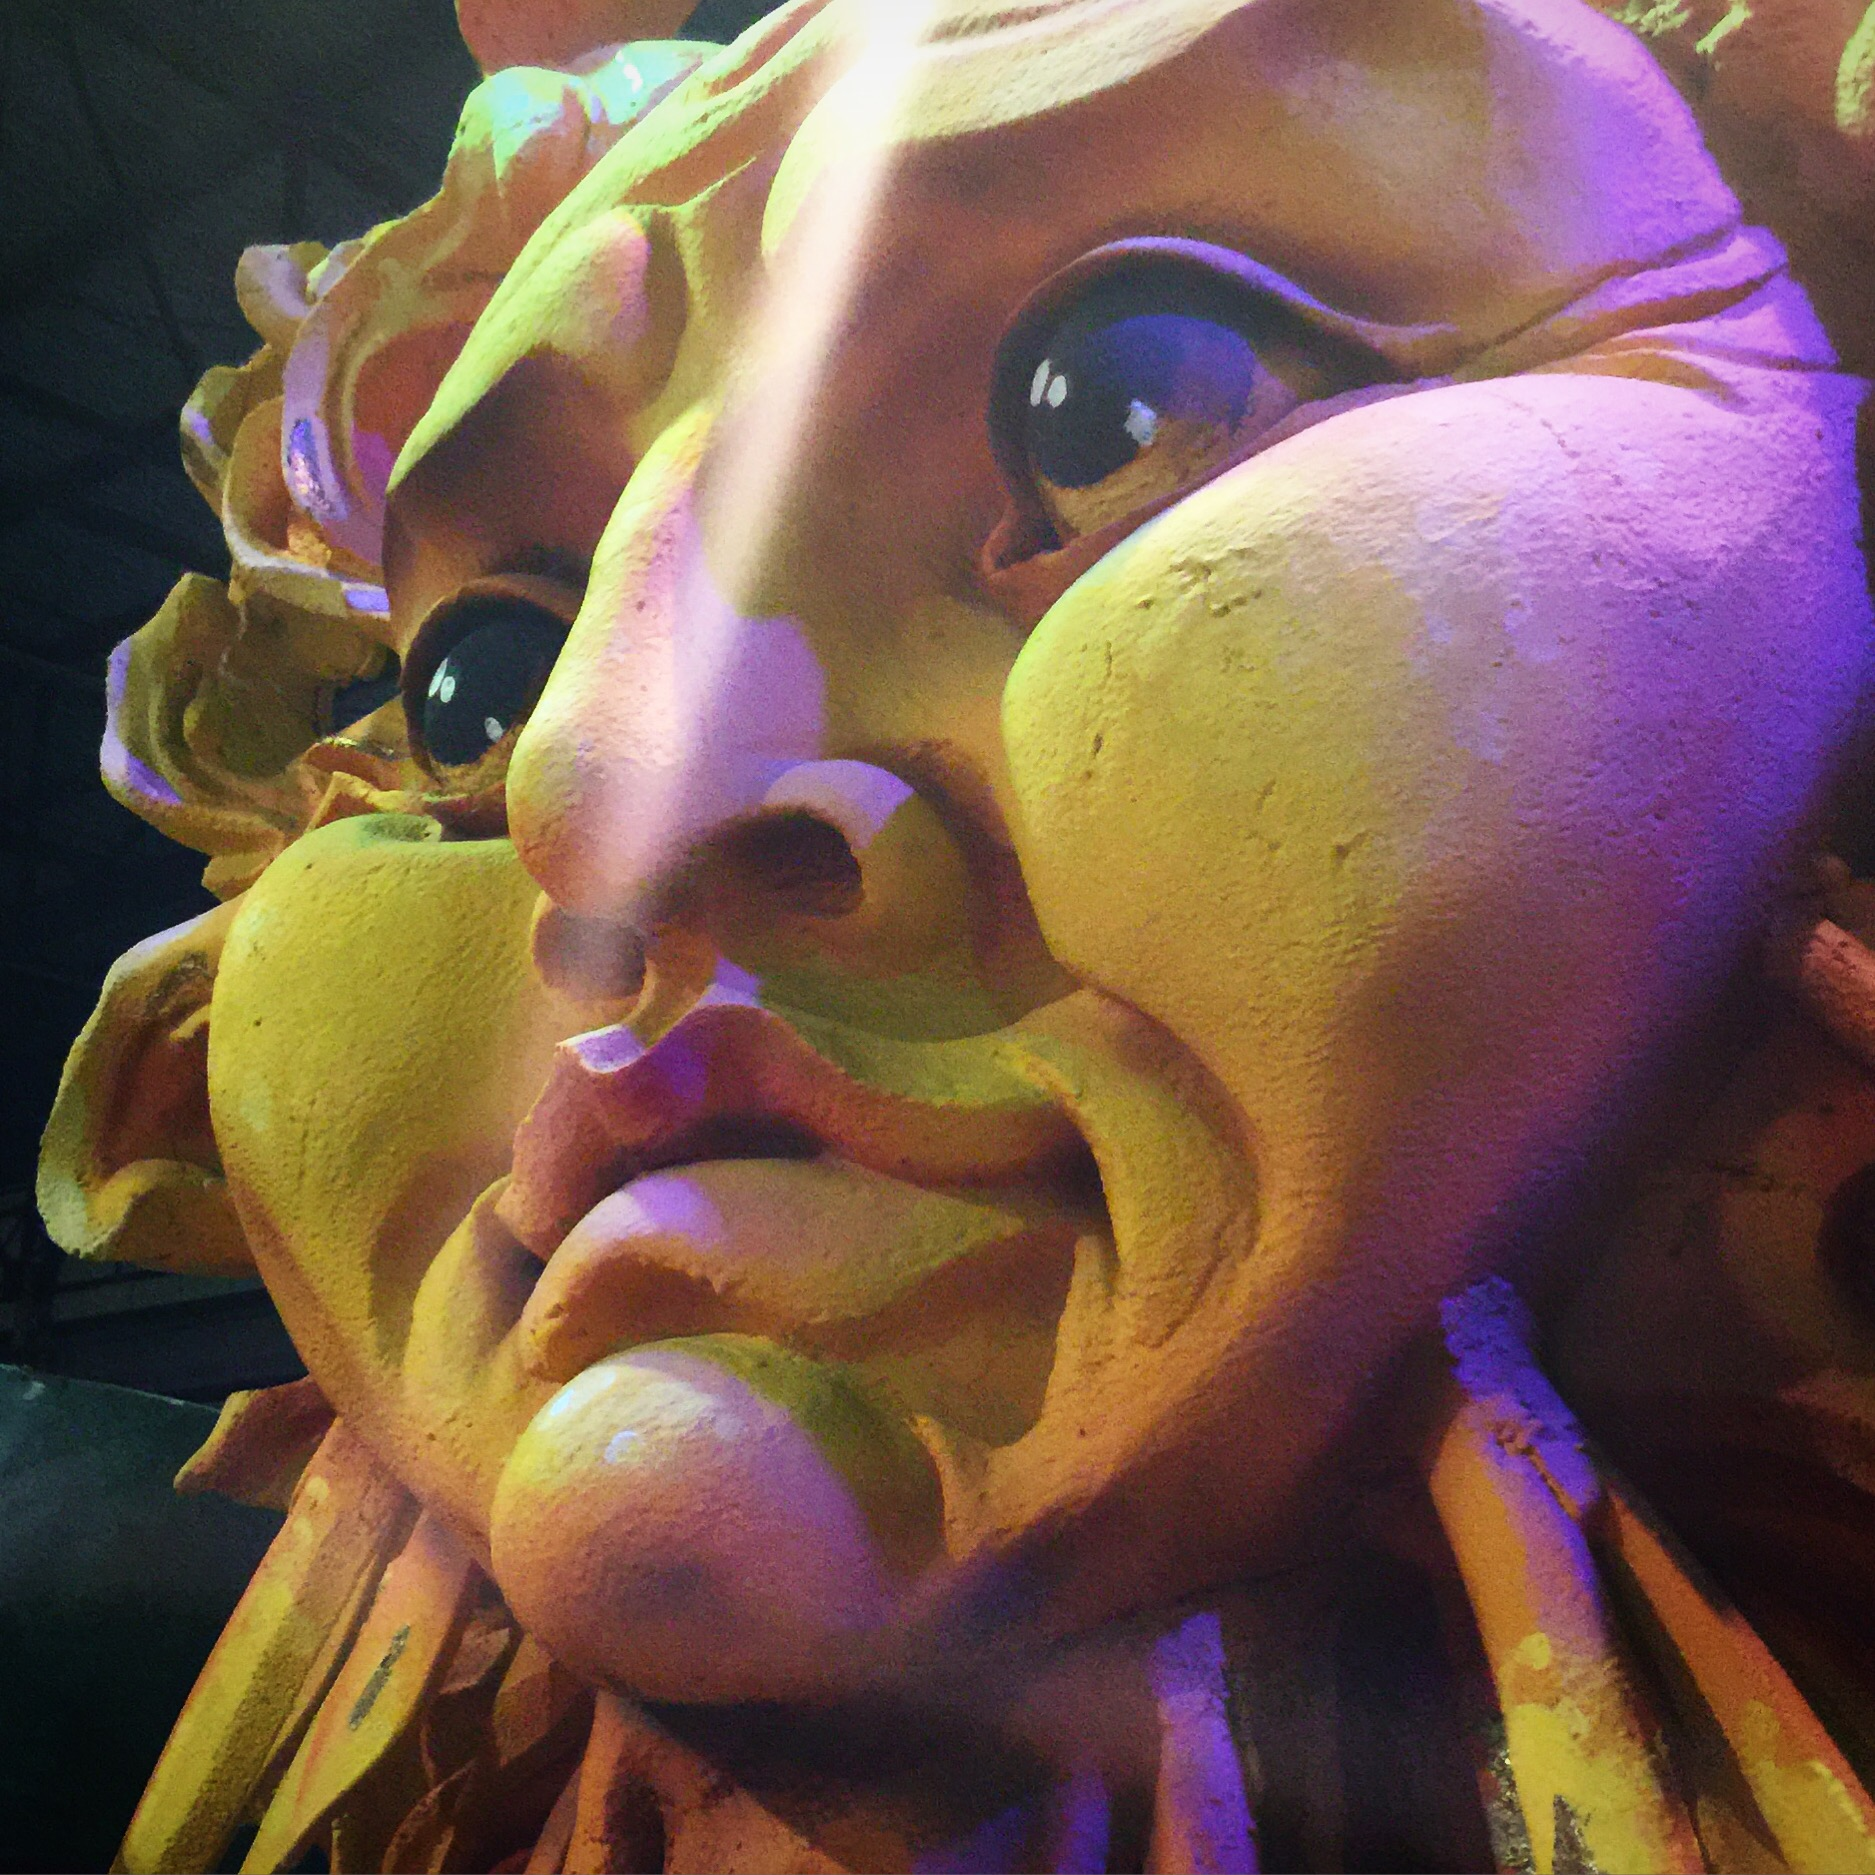 sun face sculpture at Mardis Gras World